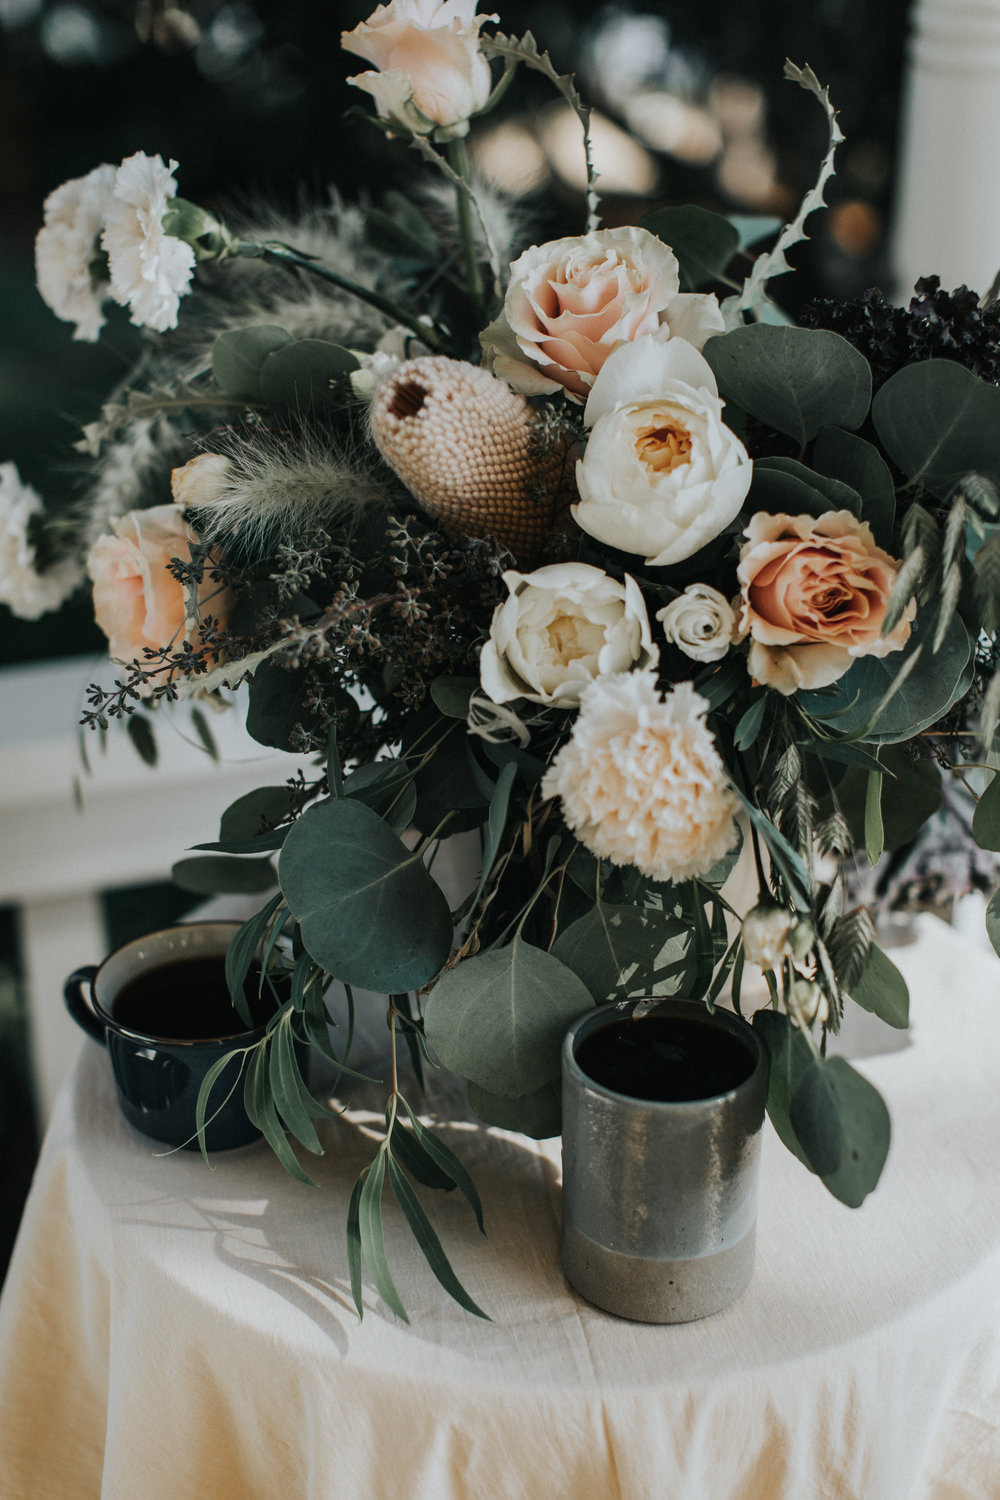 Garden roses, antique carnations, eucalyptus variations, and dried floral elements.